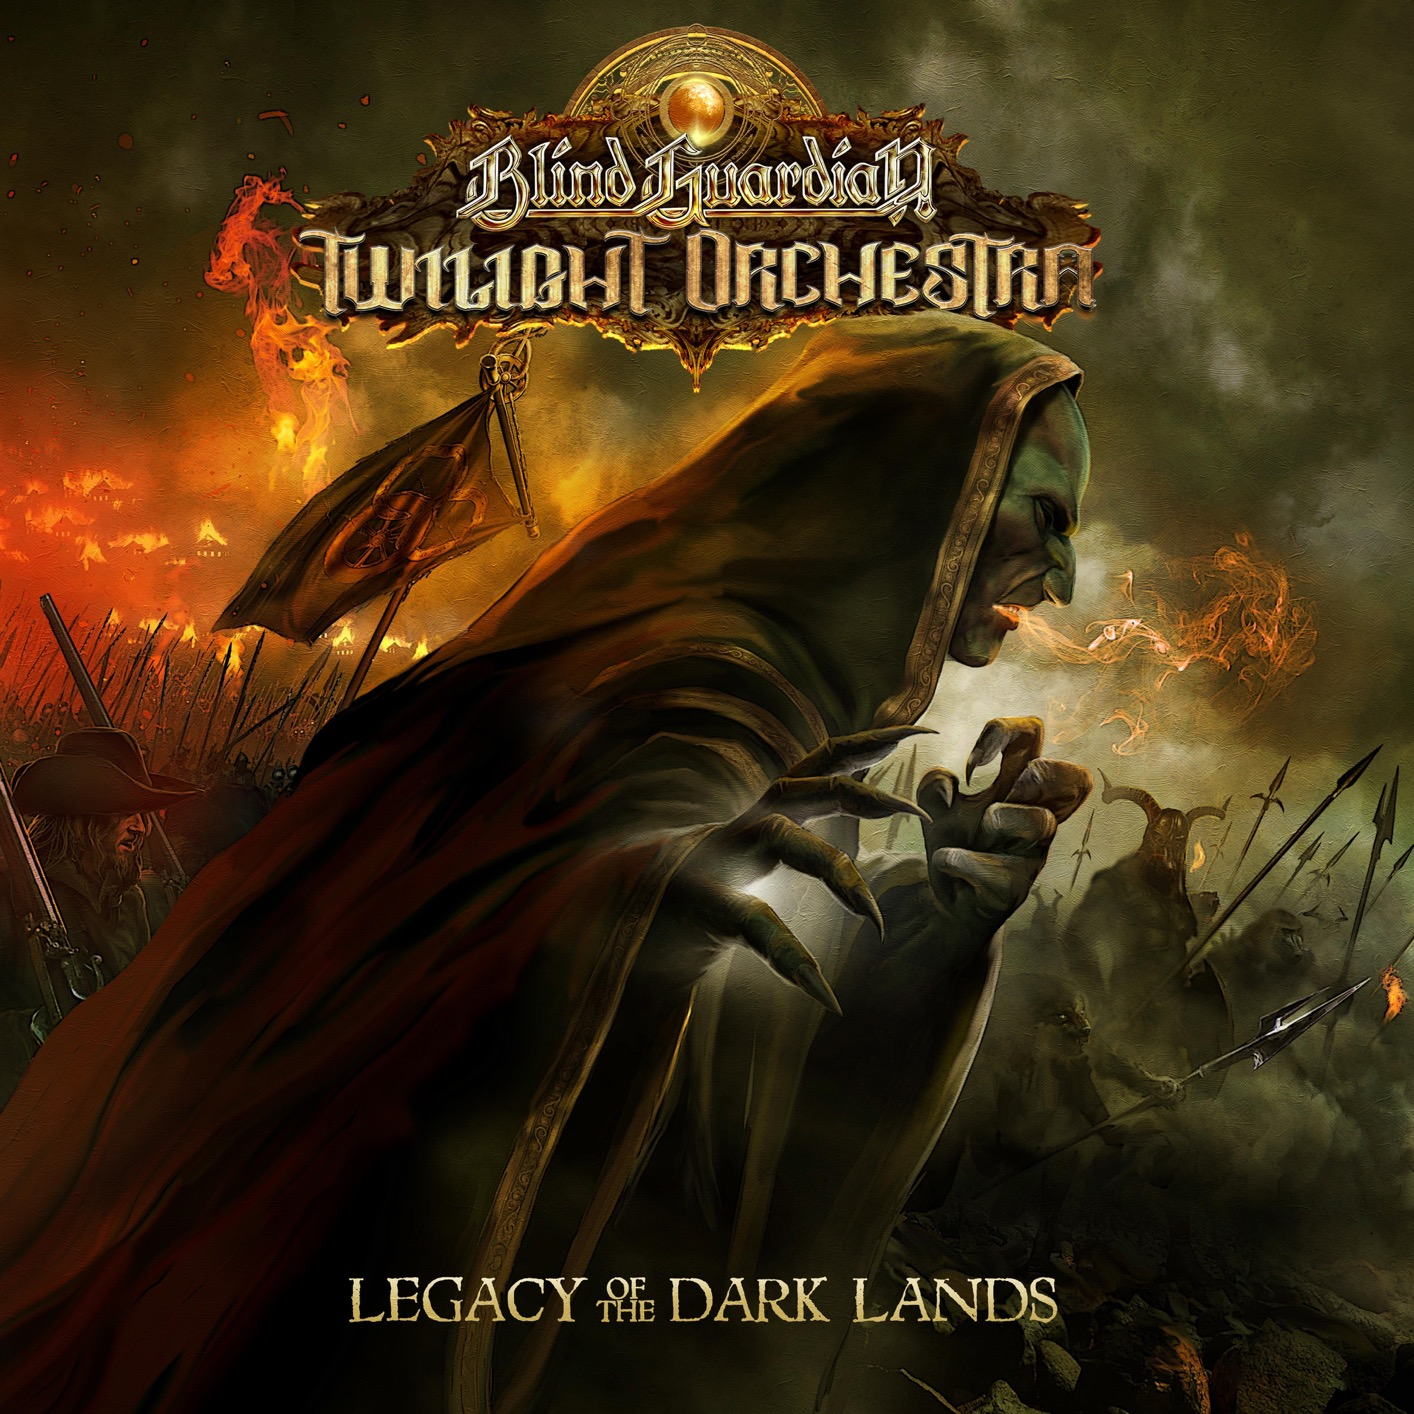 [TR24][OF] Blind Guardian Twilight Orchestra - Legacy of the Dark Lands - 2019 (Power Metal, Symphonic Rock)